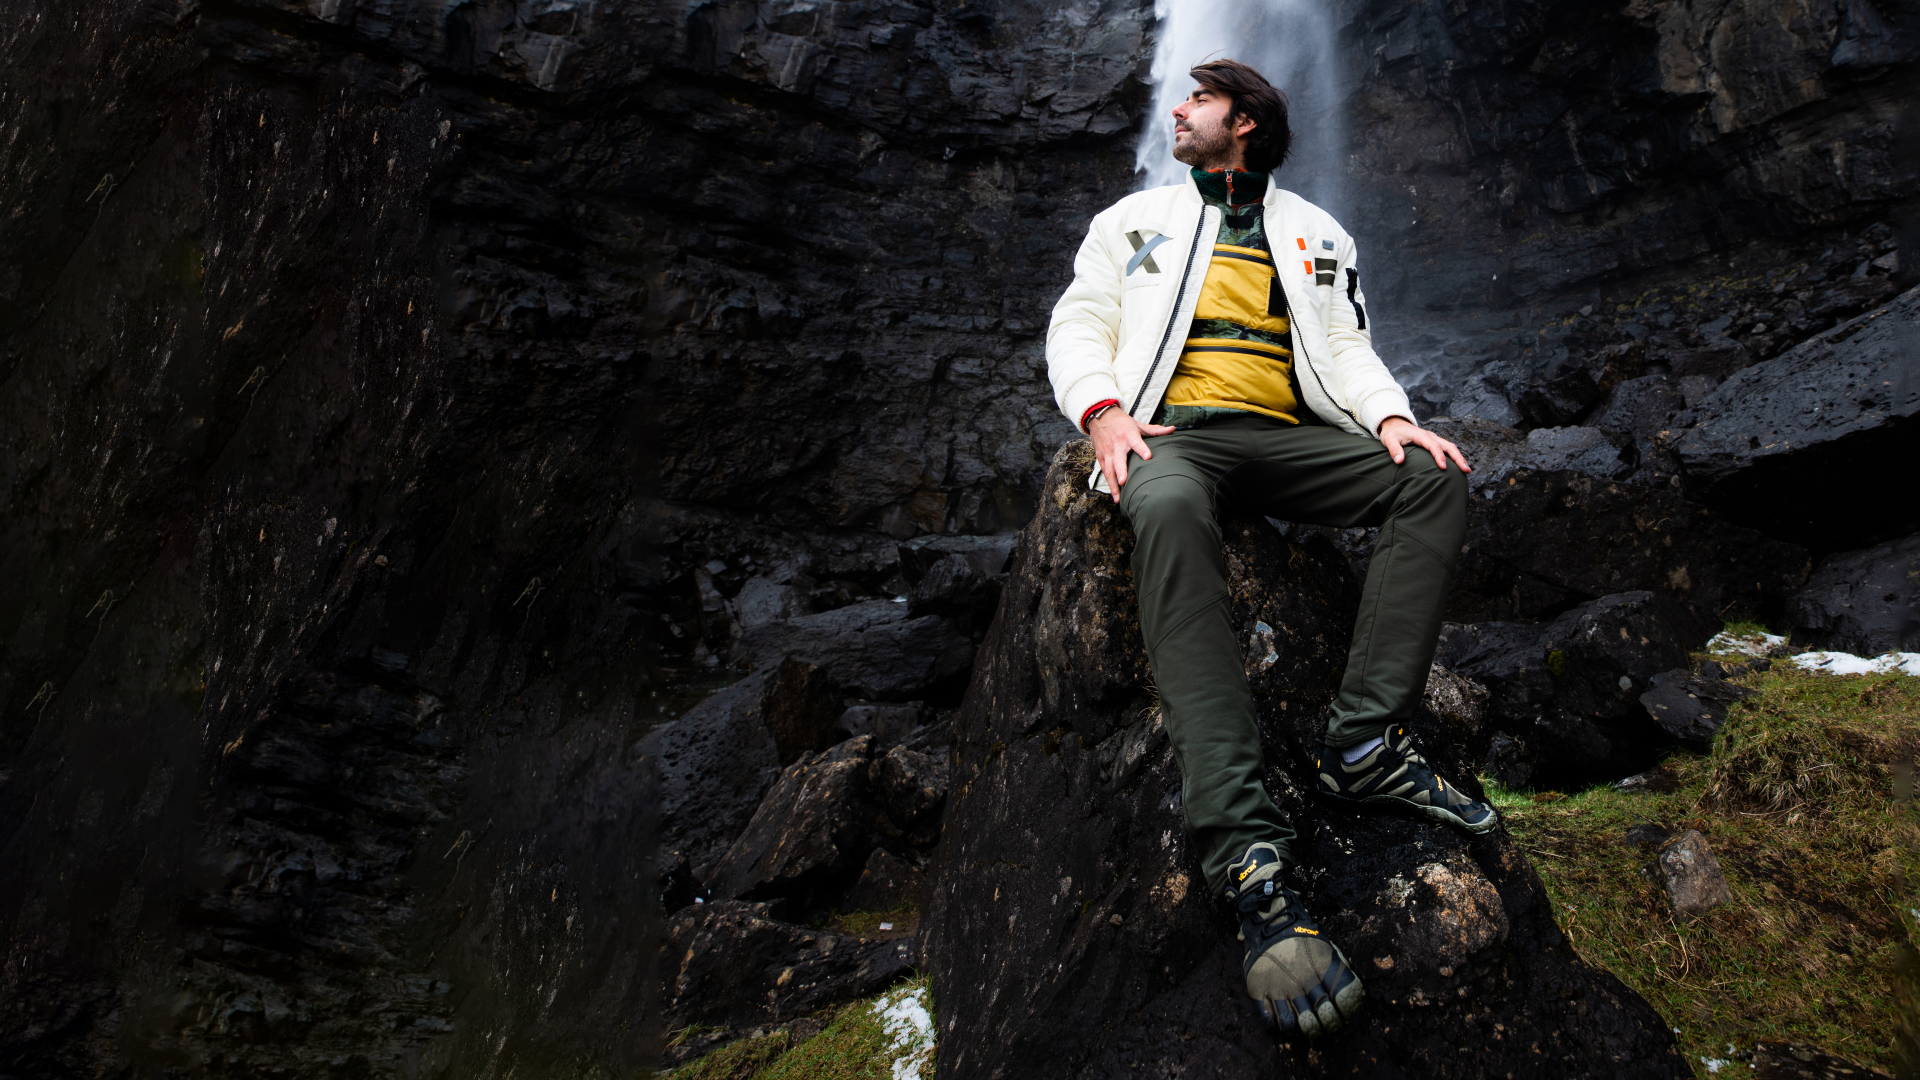 Discover the best locations suggested by Vibram FiveFingers ambassadors.